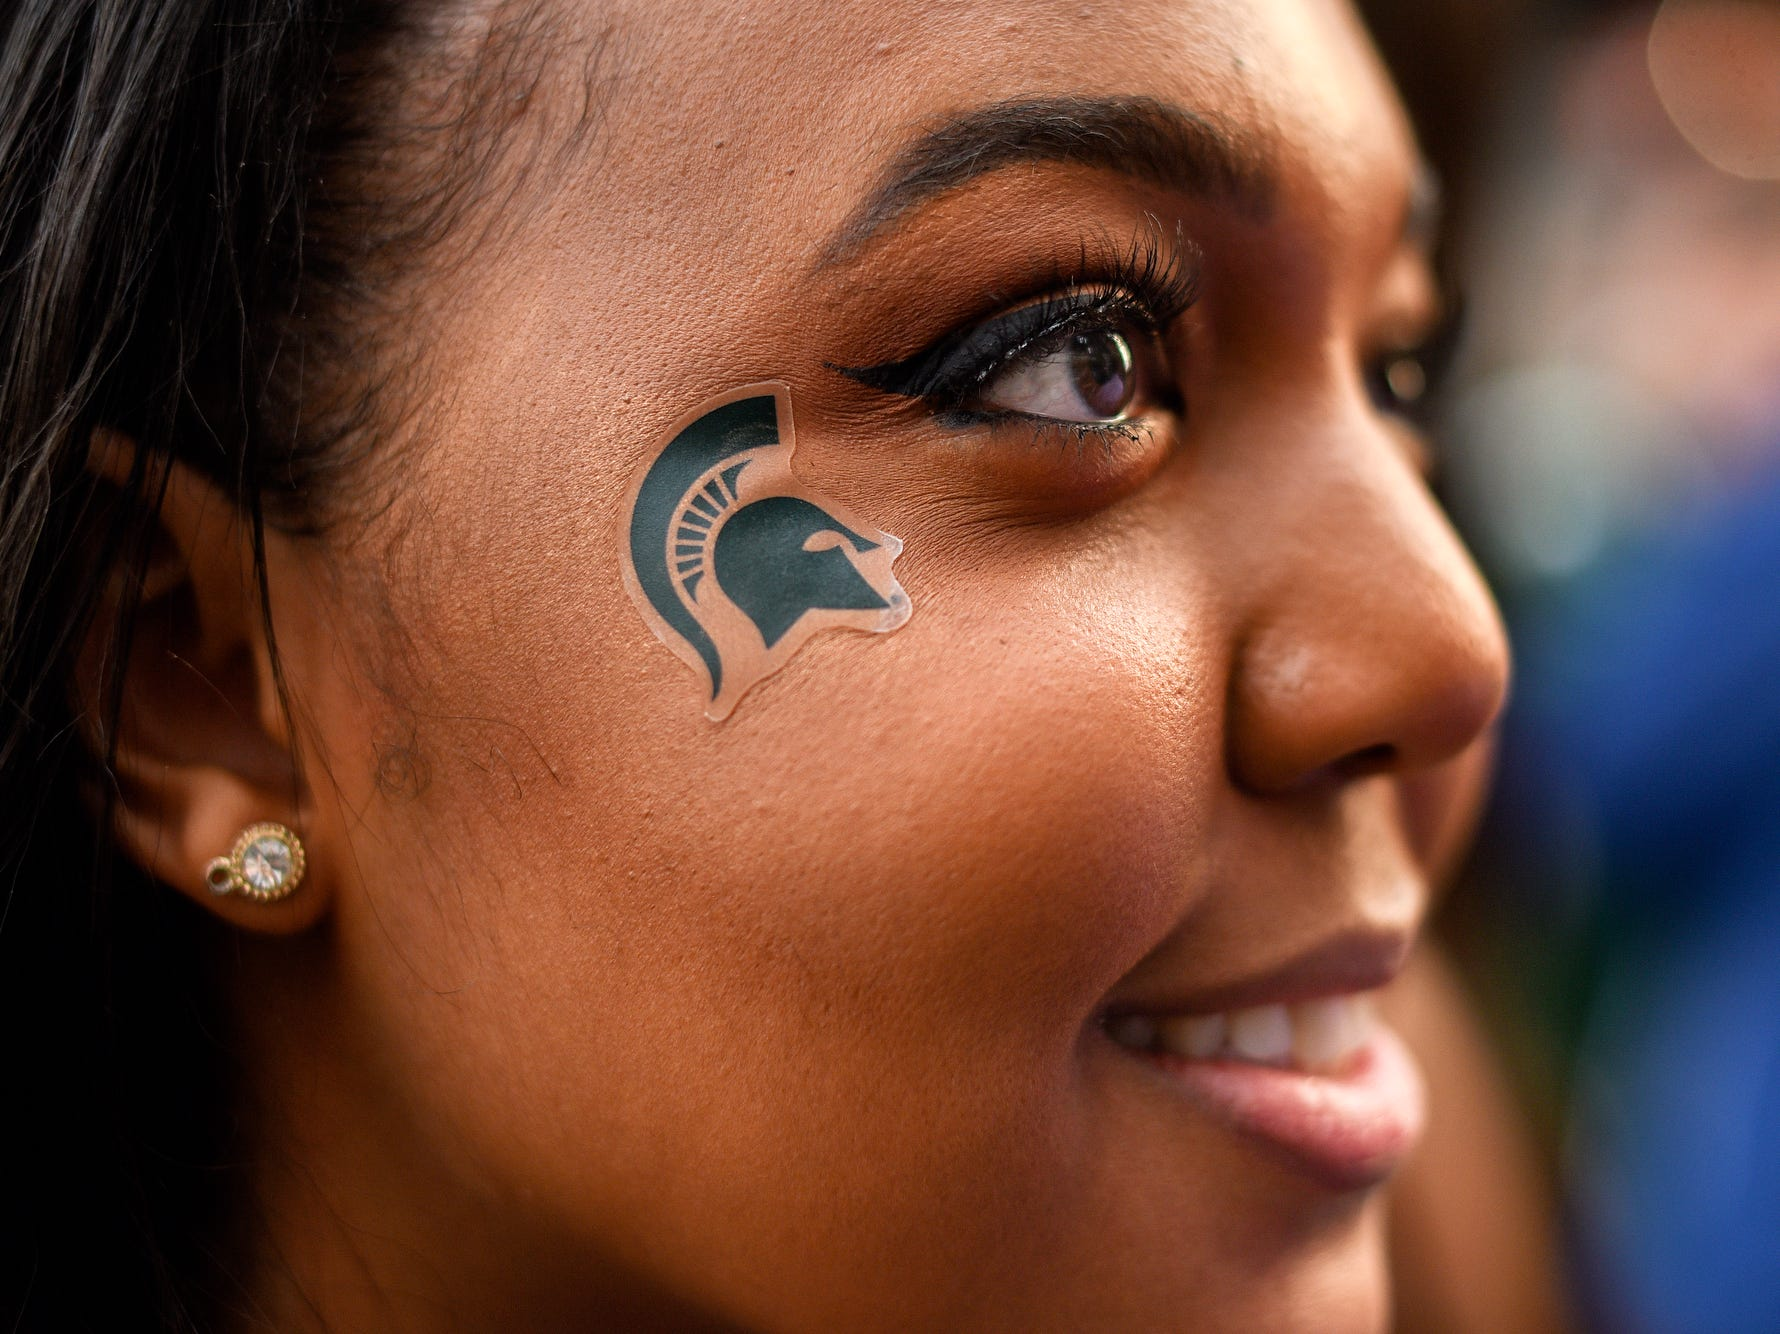 Michigan State University senior Brittany Thomas sports a Spartans logo on her cheek as she waits to get inside the FieldHouse to watch the Michigan State Spartans' Final Four game against Texas Tech on Saturday, April 6, 2019, in East Lansing.